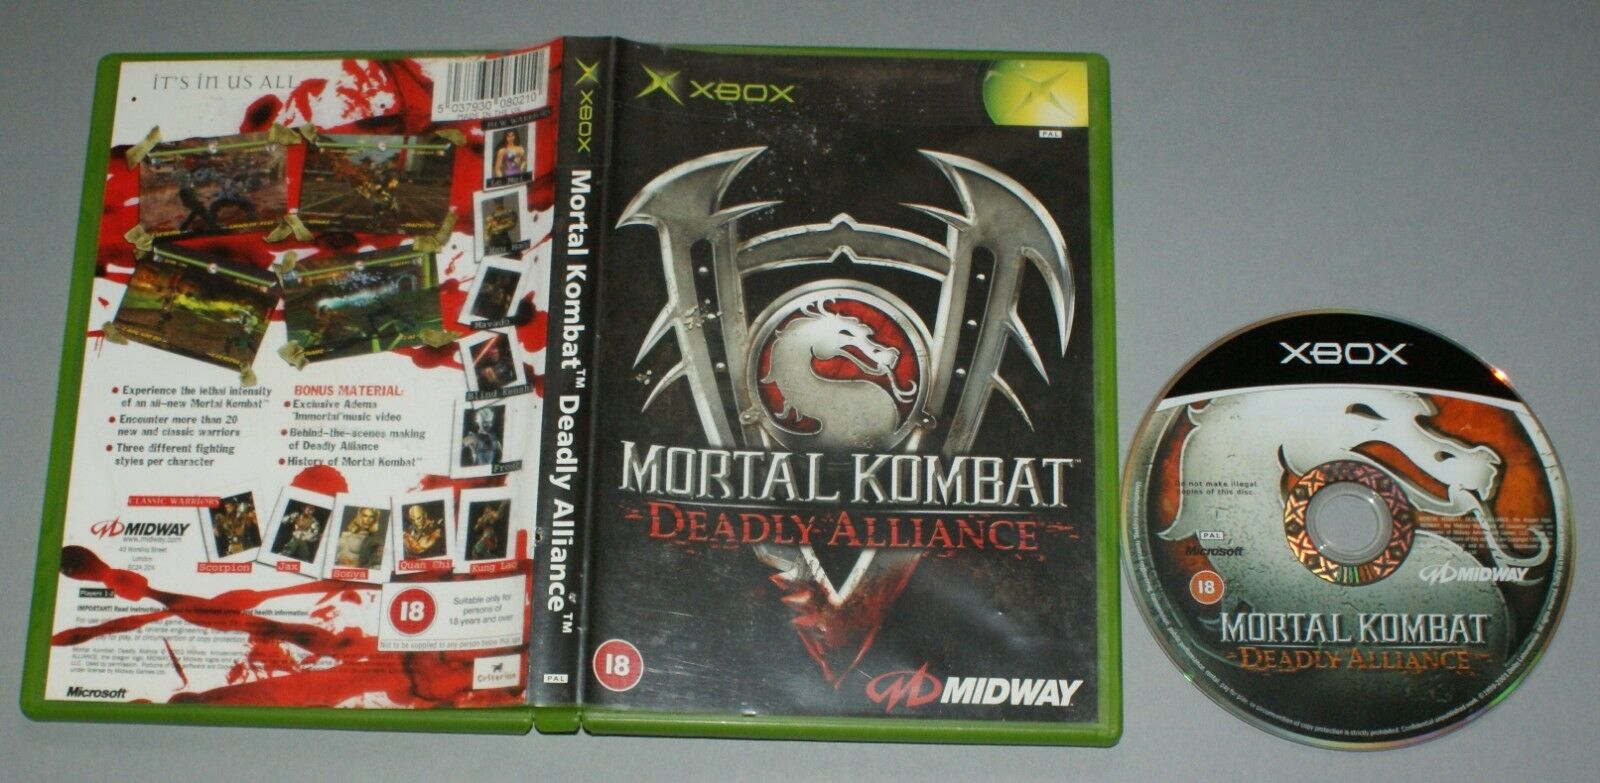 Mortal Kombat Deadly Alliance - £3 99 - EveryBitGaming